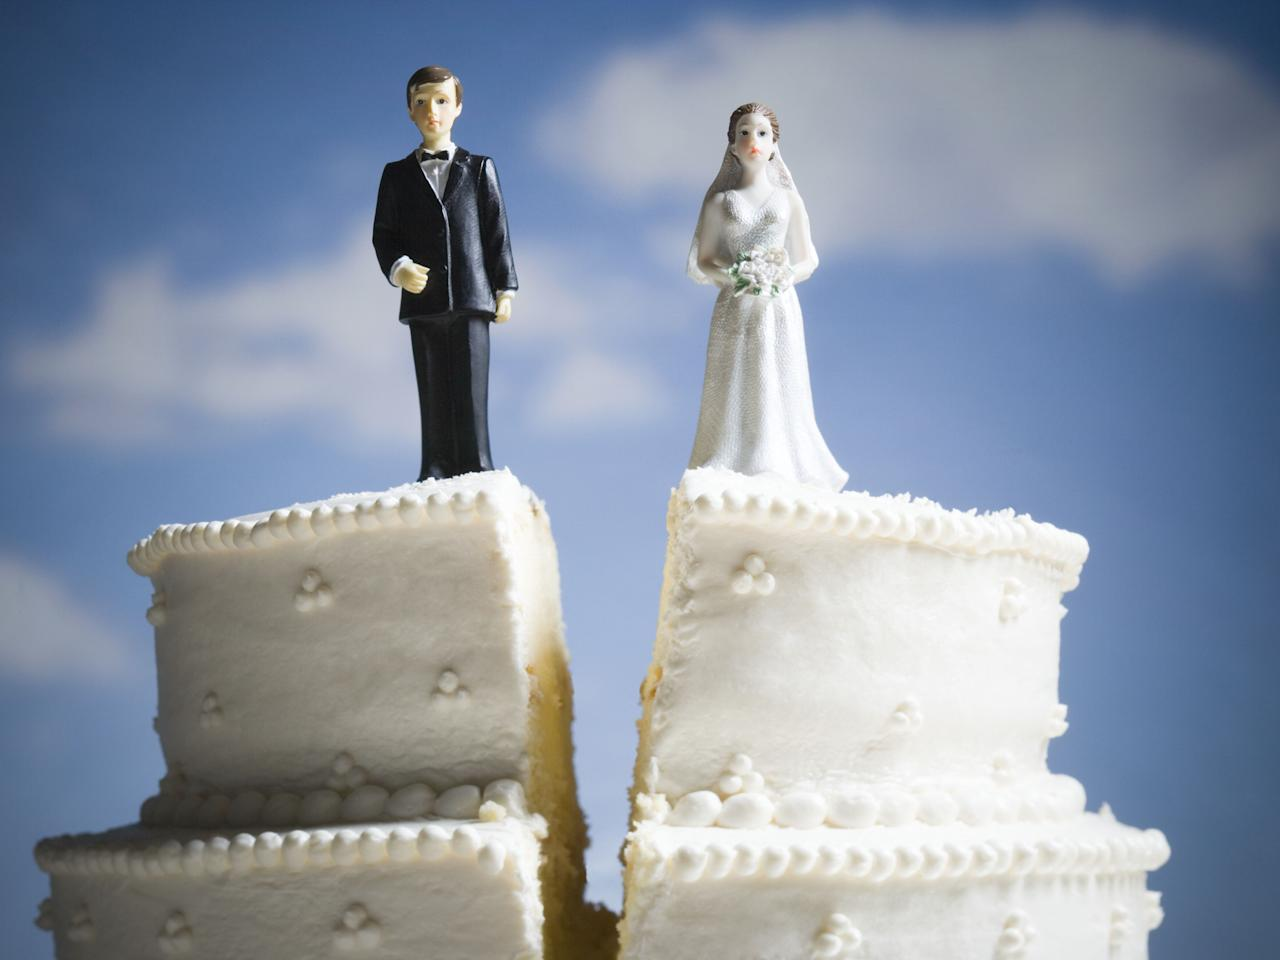 "<p>Splitting up is never easy—whether you've been together two months or twenty years. And divorce can get ugly (remember <em>Marriage Story</em>?). But the truth is...it happens. According to <a href=""https://www.hamptonroadslegal.com/faqs/facts-on-divorce-in-america.cfm"" target=""_blank"">Hampton Roads Legal Services</a>, there are 2,400 divorces per day in the Unites States. So, you're definitely not alone. But just in case you're feeling a little down about this major life change, check out these words of wisdom from authors, philosophers and celebrities who have been there and done that. </p>"